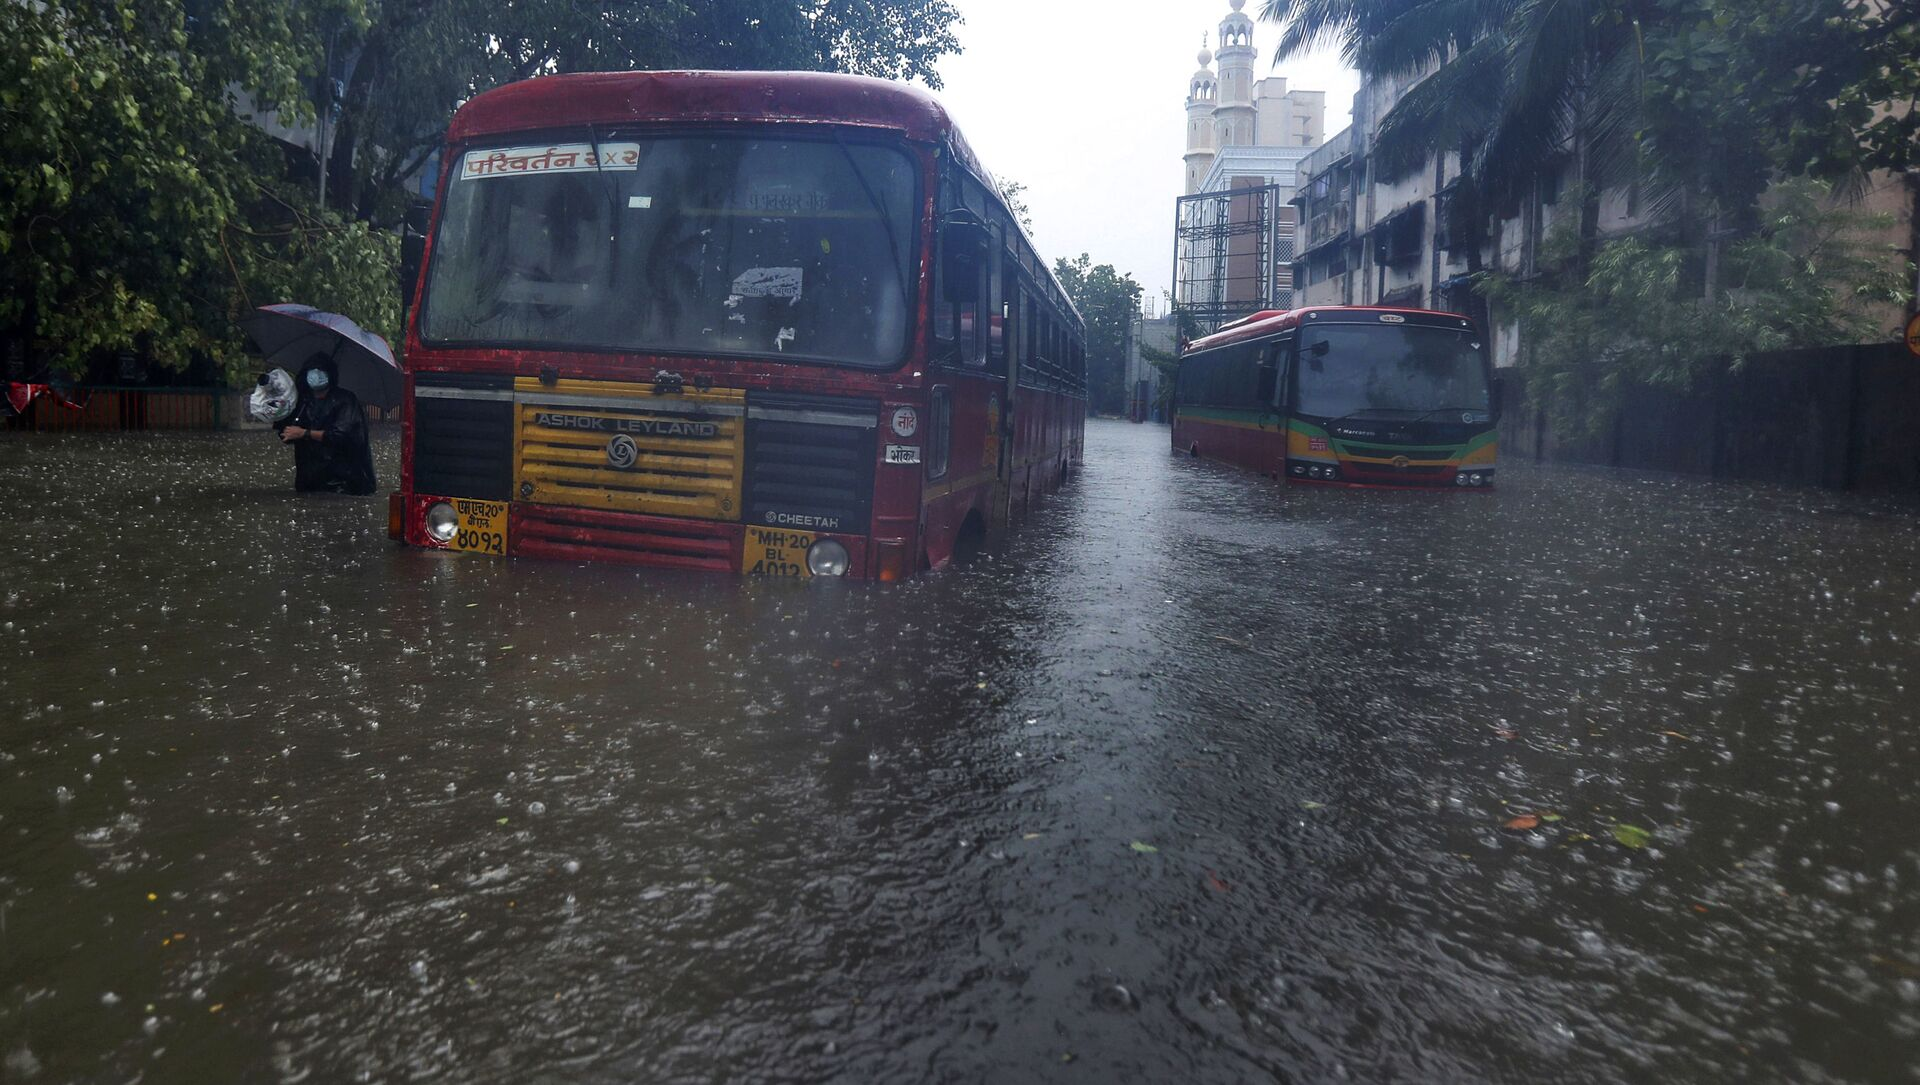 Buses are stranded on a waterlogged road during heavy rain in Mumbai, India - Sputnik International, 1920, 29.07.2021